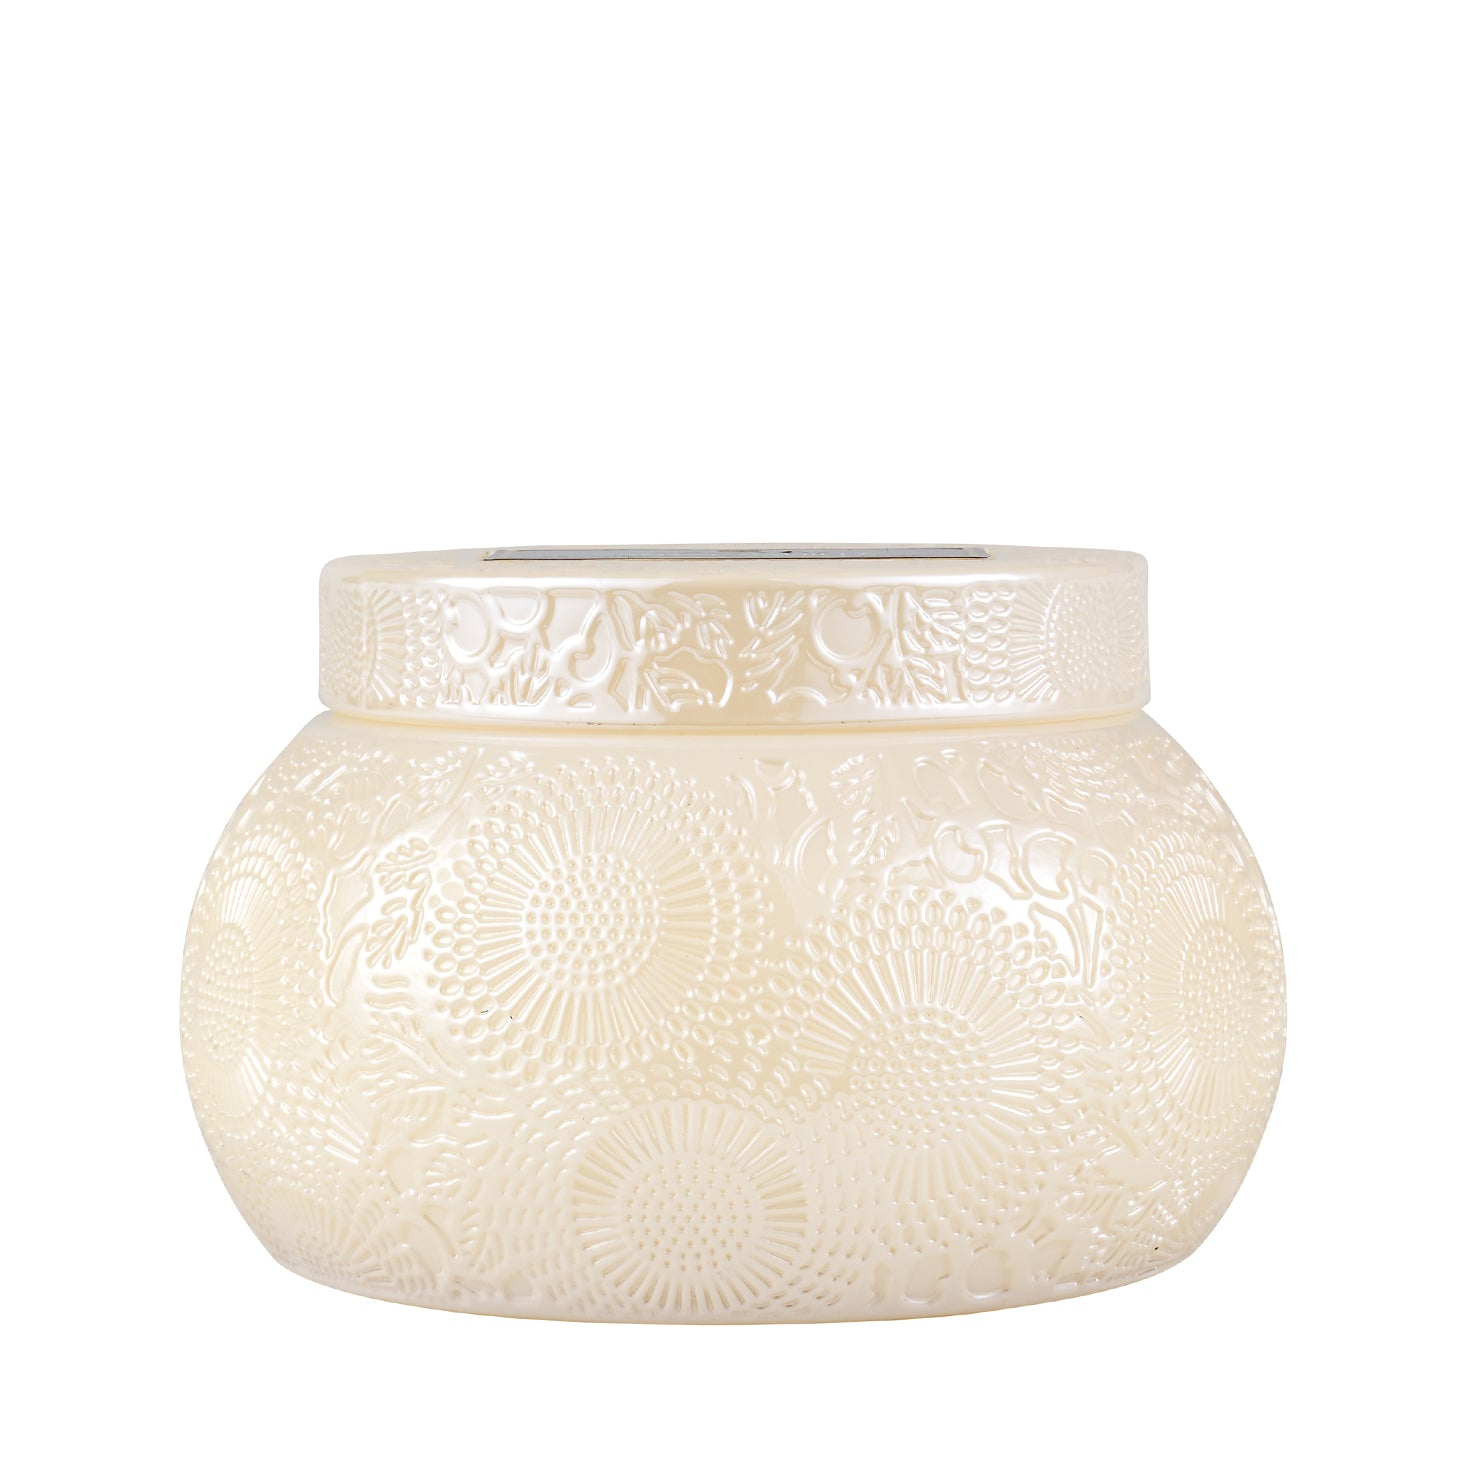 VOLUSPA Santal Vanille Chawan Candle